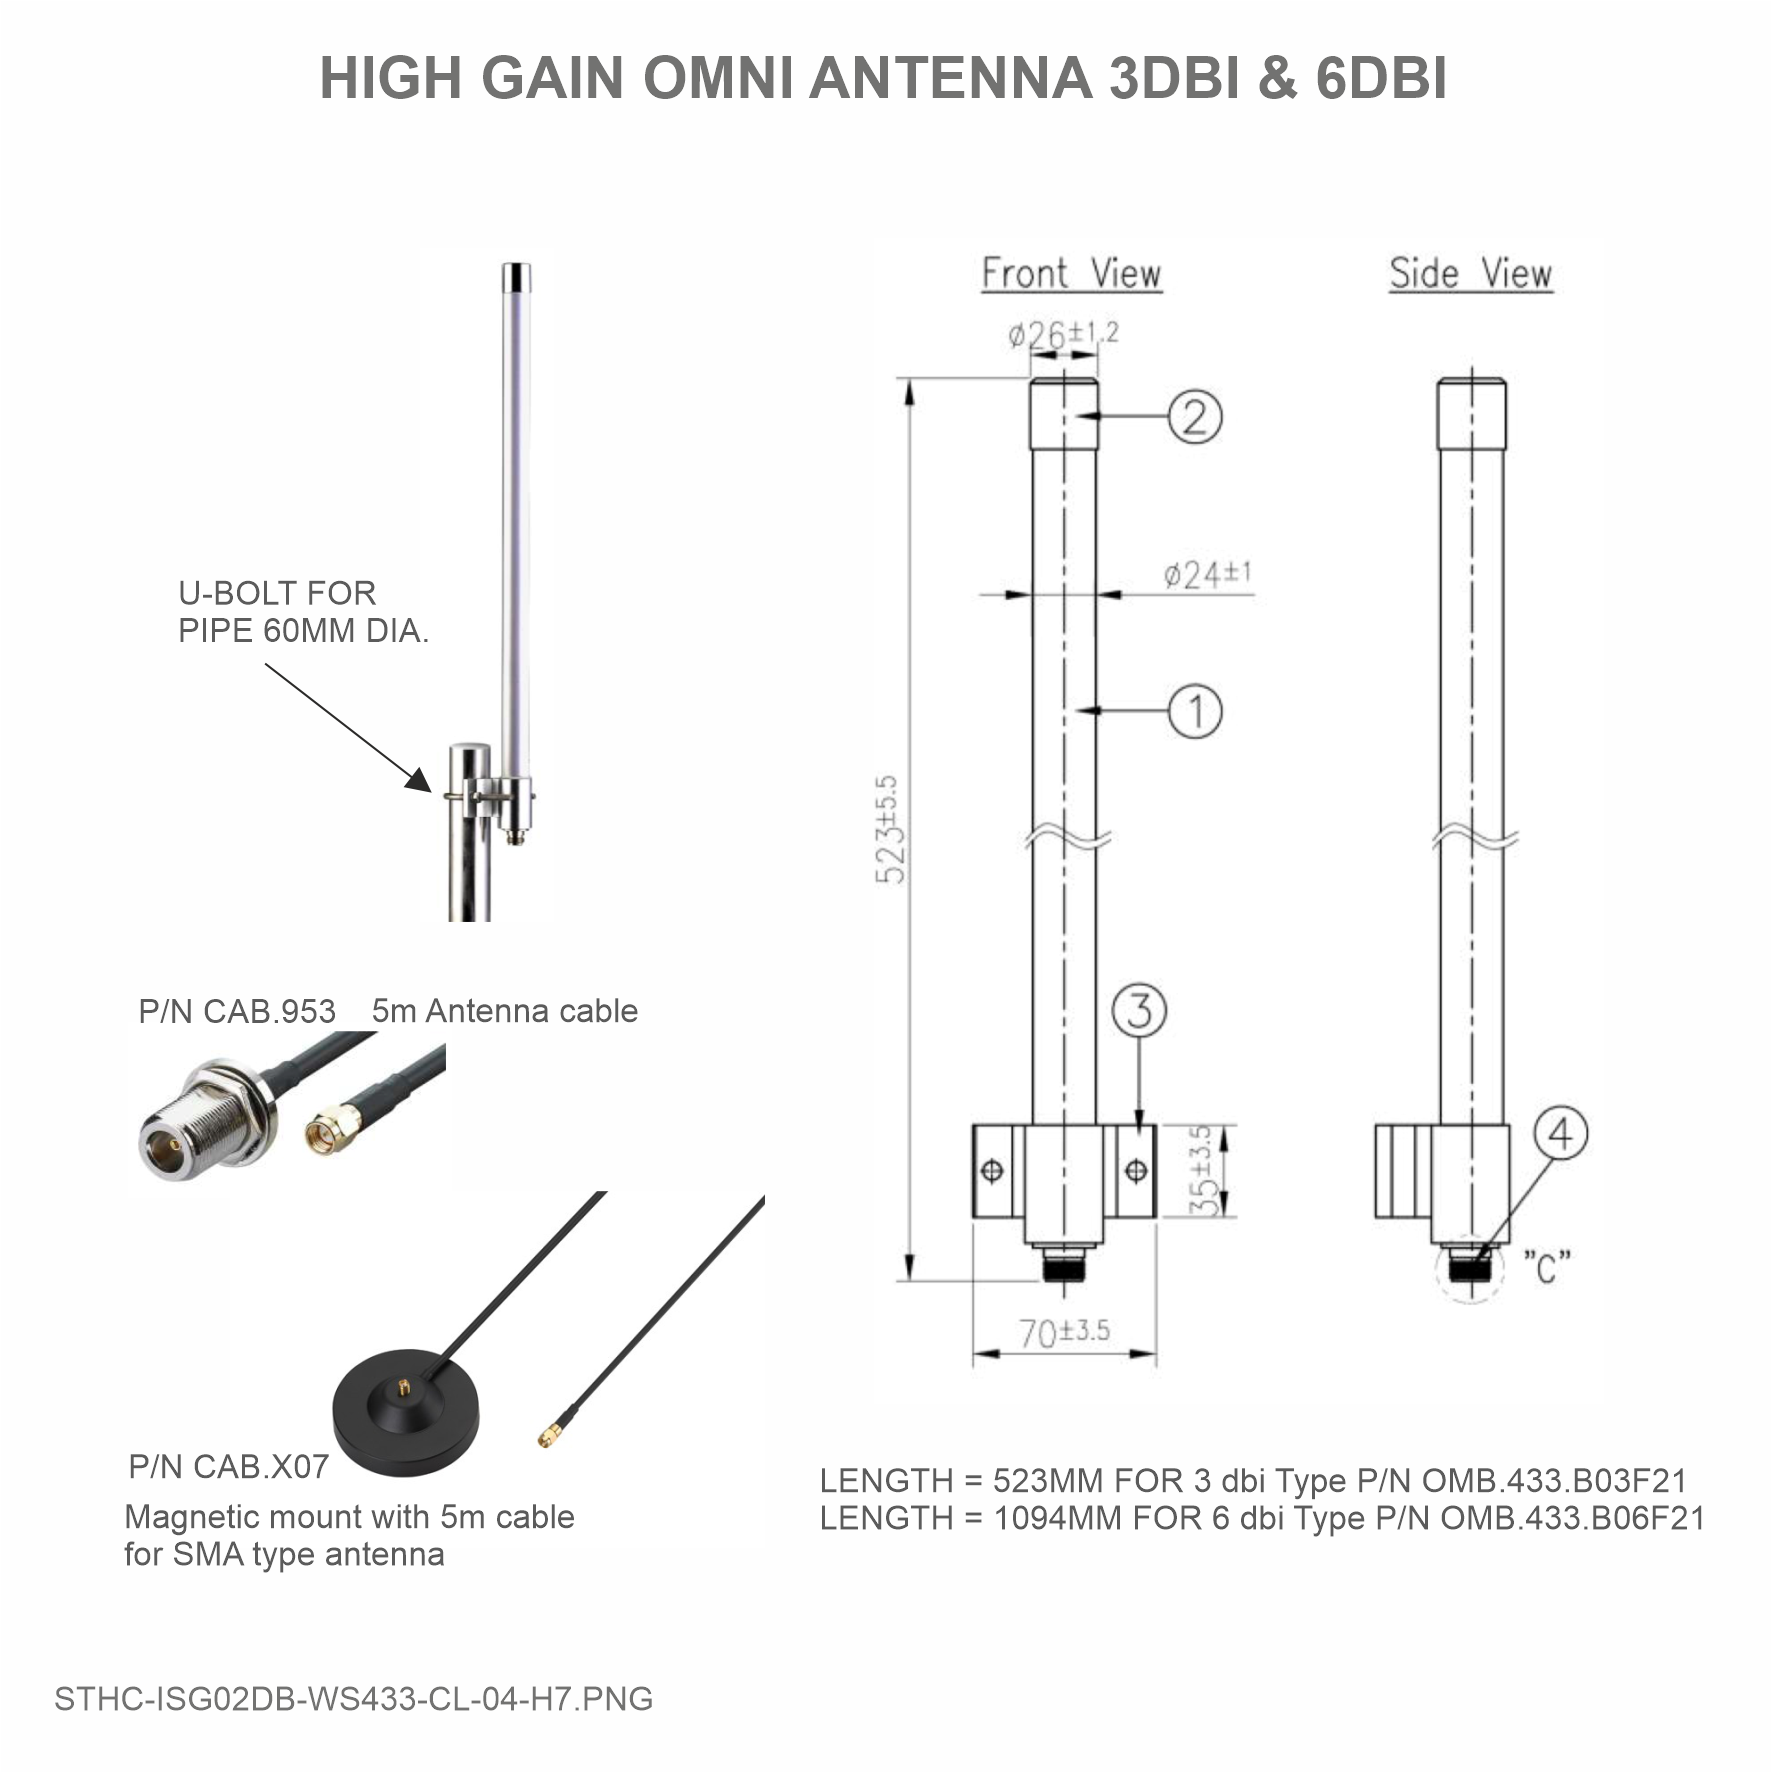 STHC-ISG02DB-WS433-CL-04-H7.png